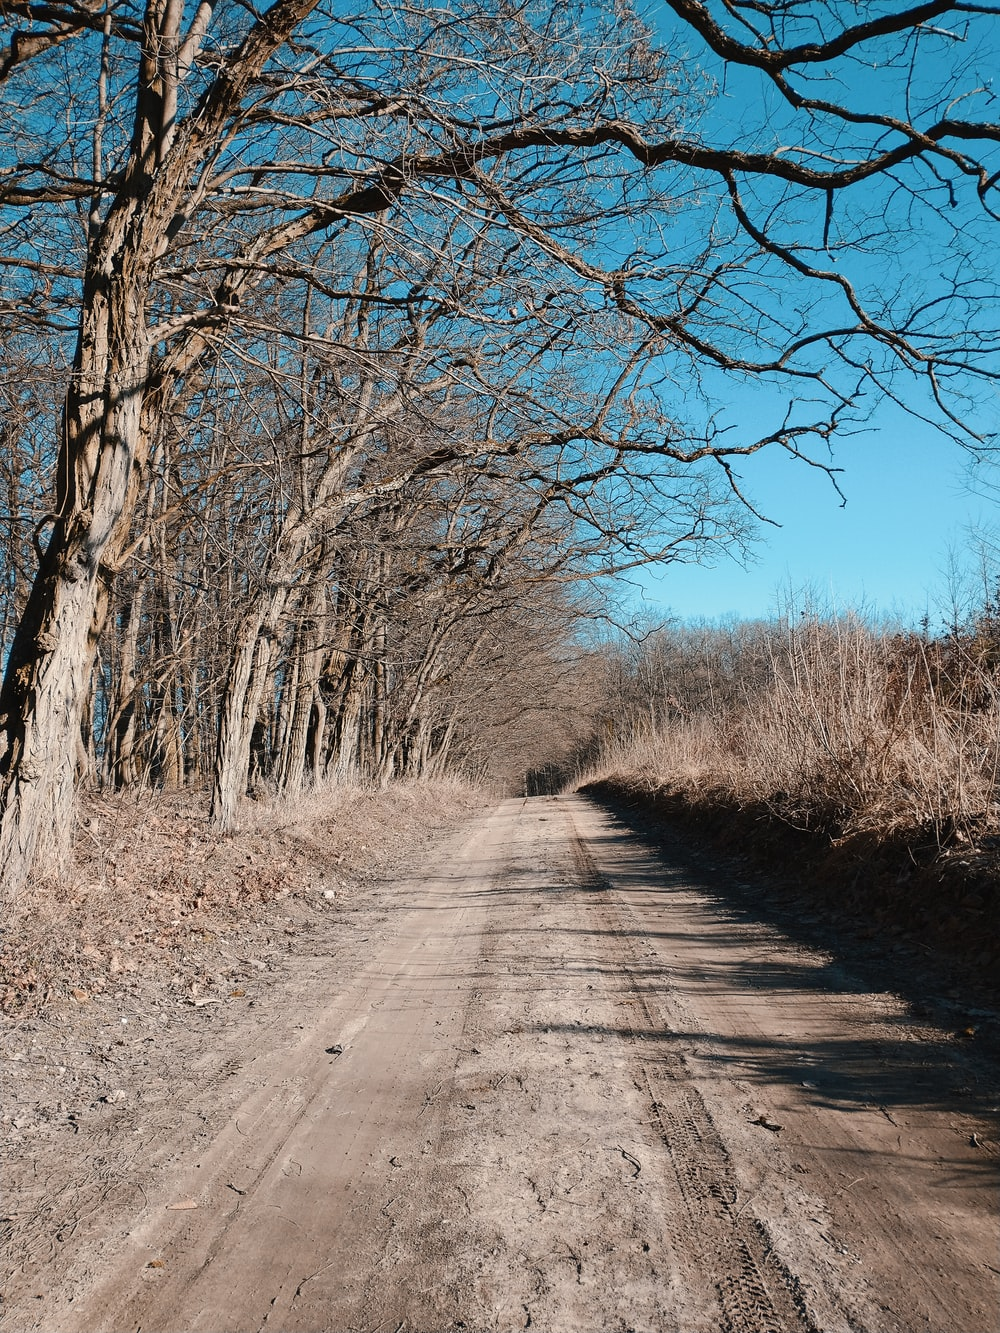 gray road between bare trees during daytime